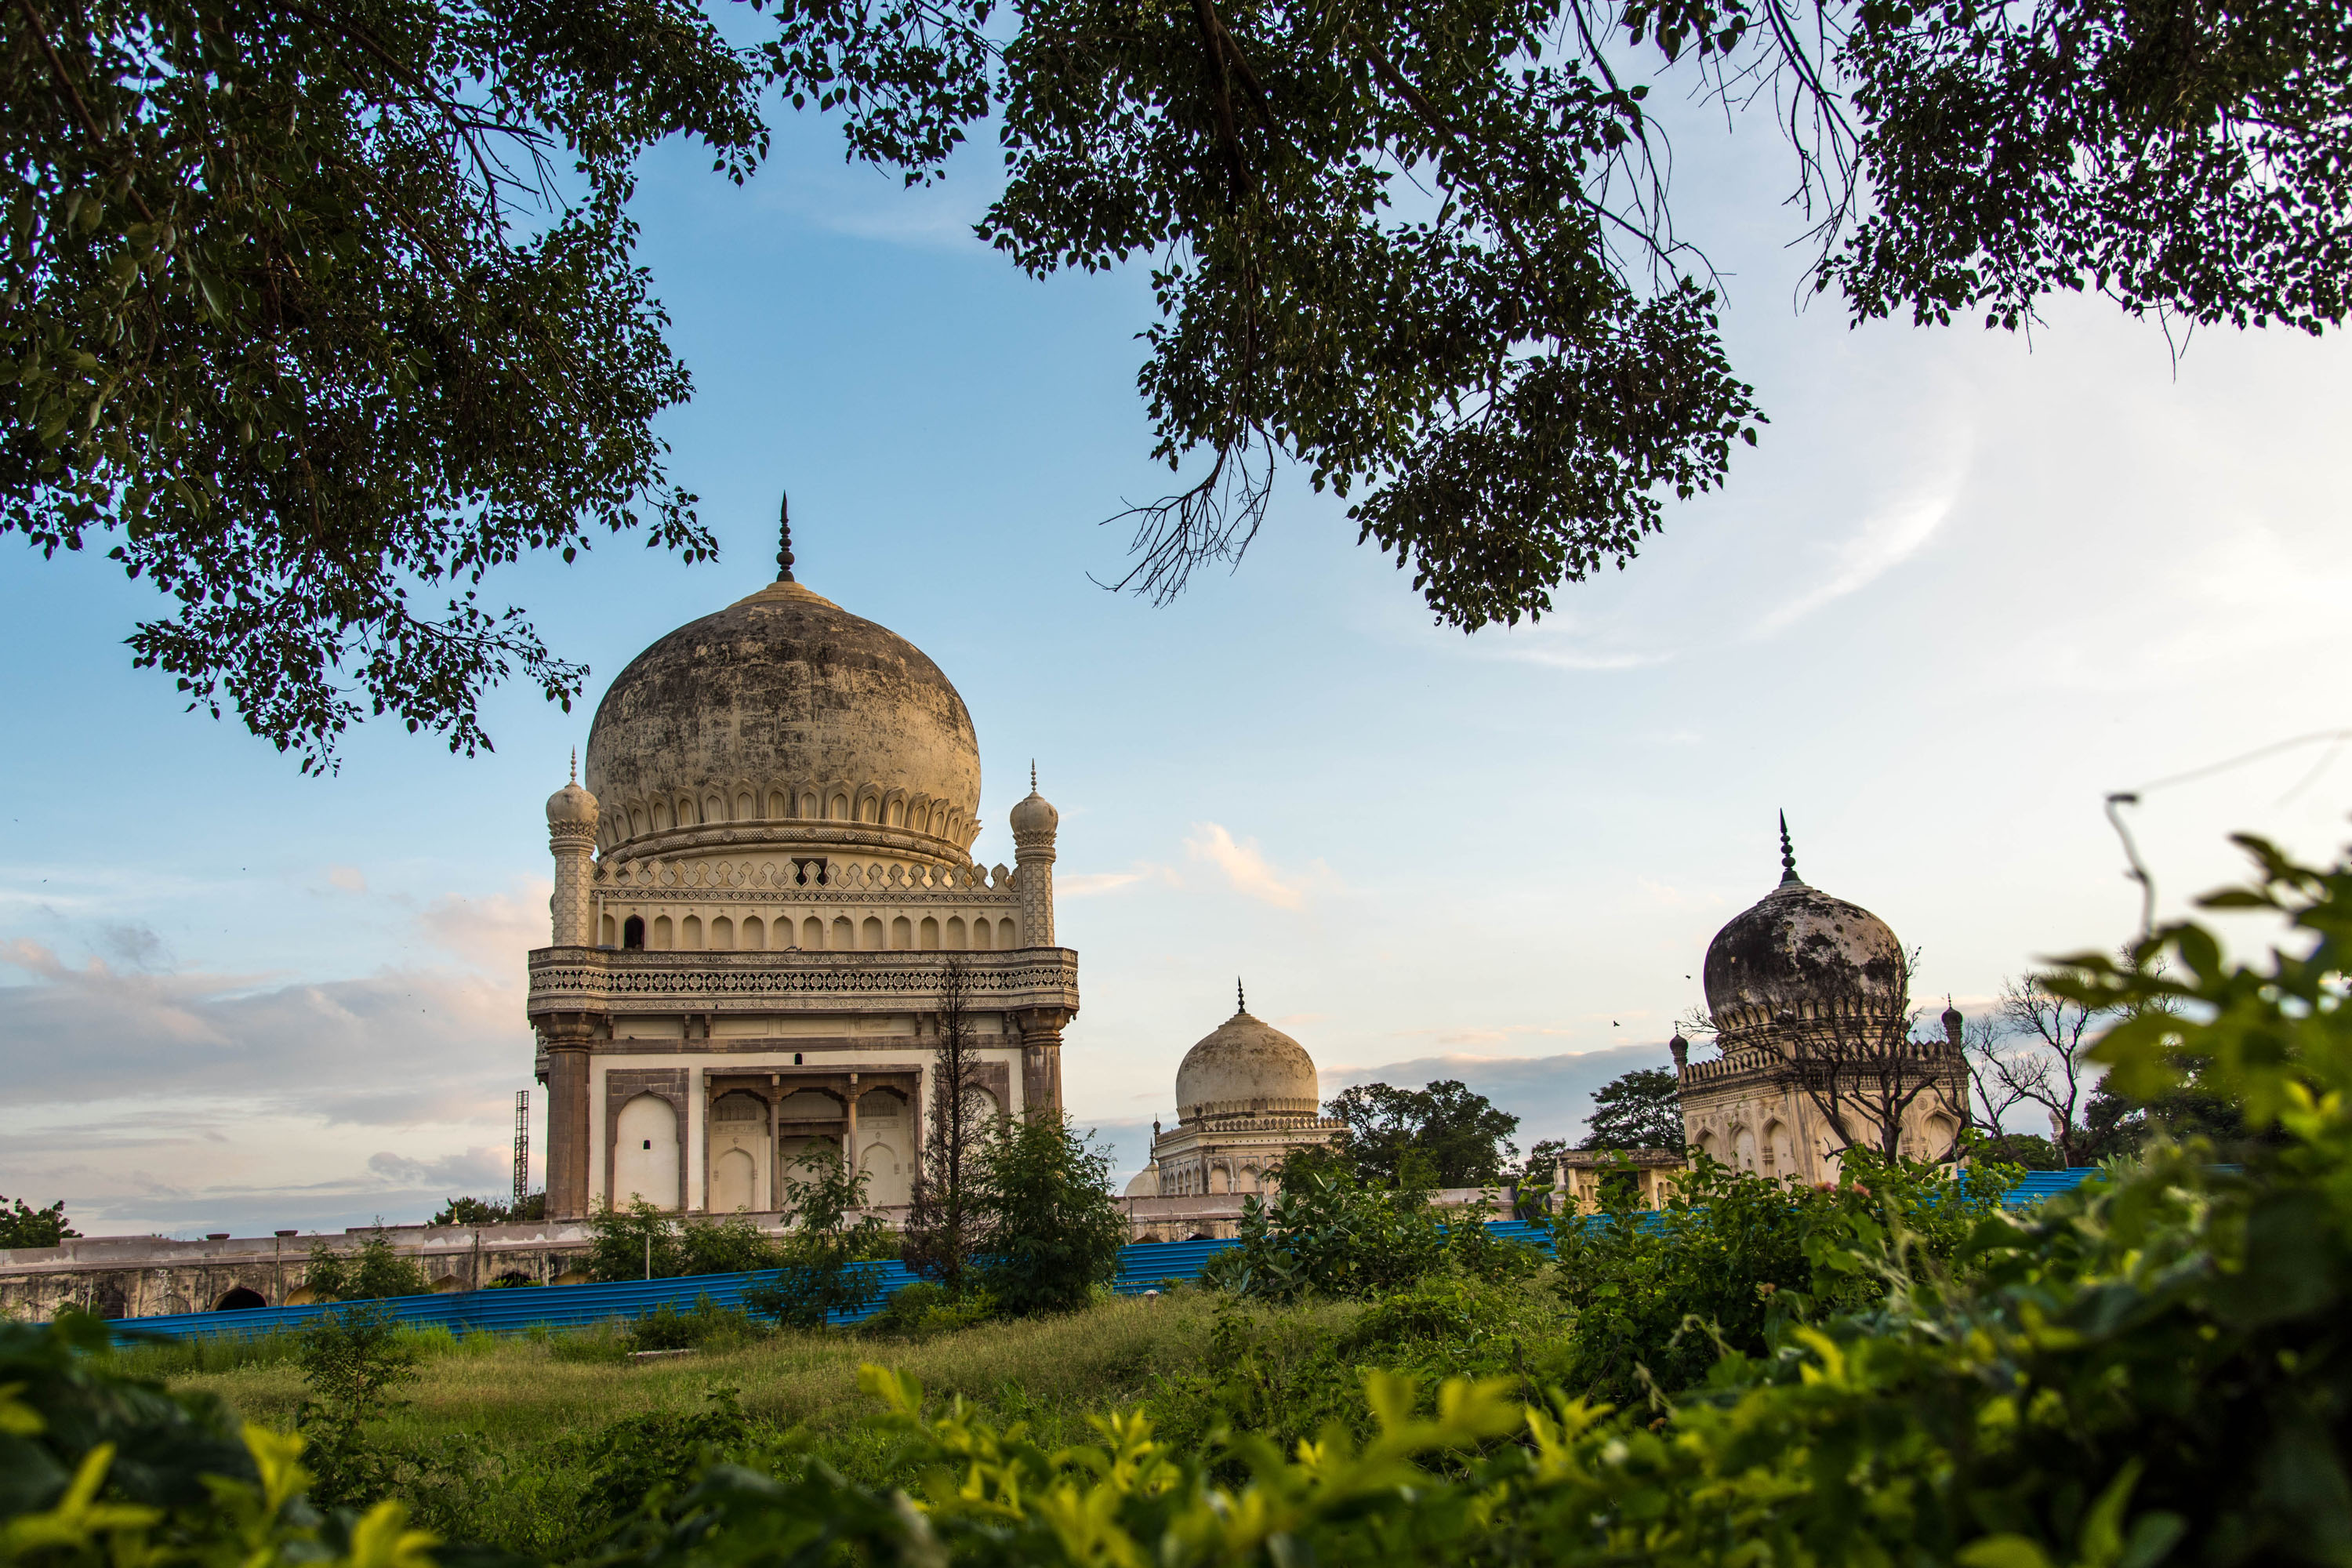 Seven tombs, Hyderabad,free indian travel and stock photos